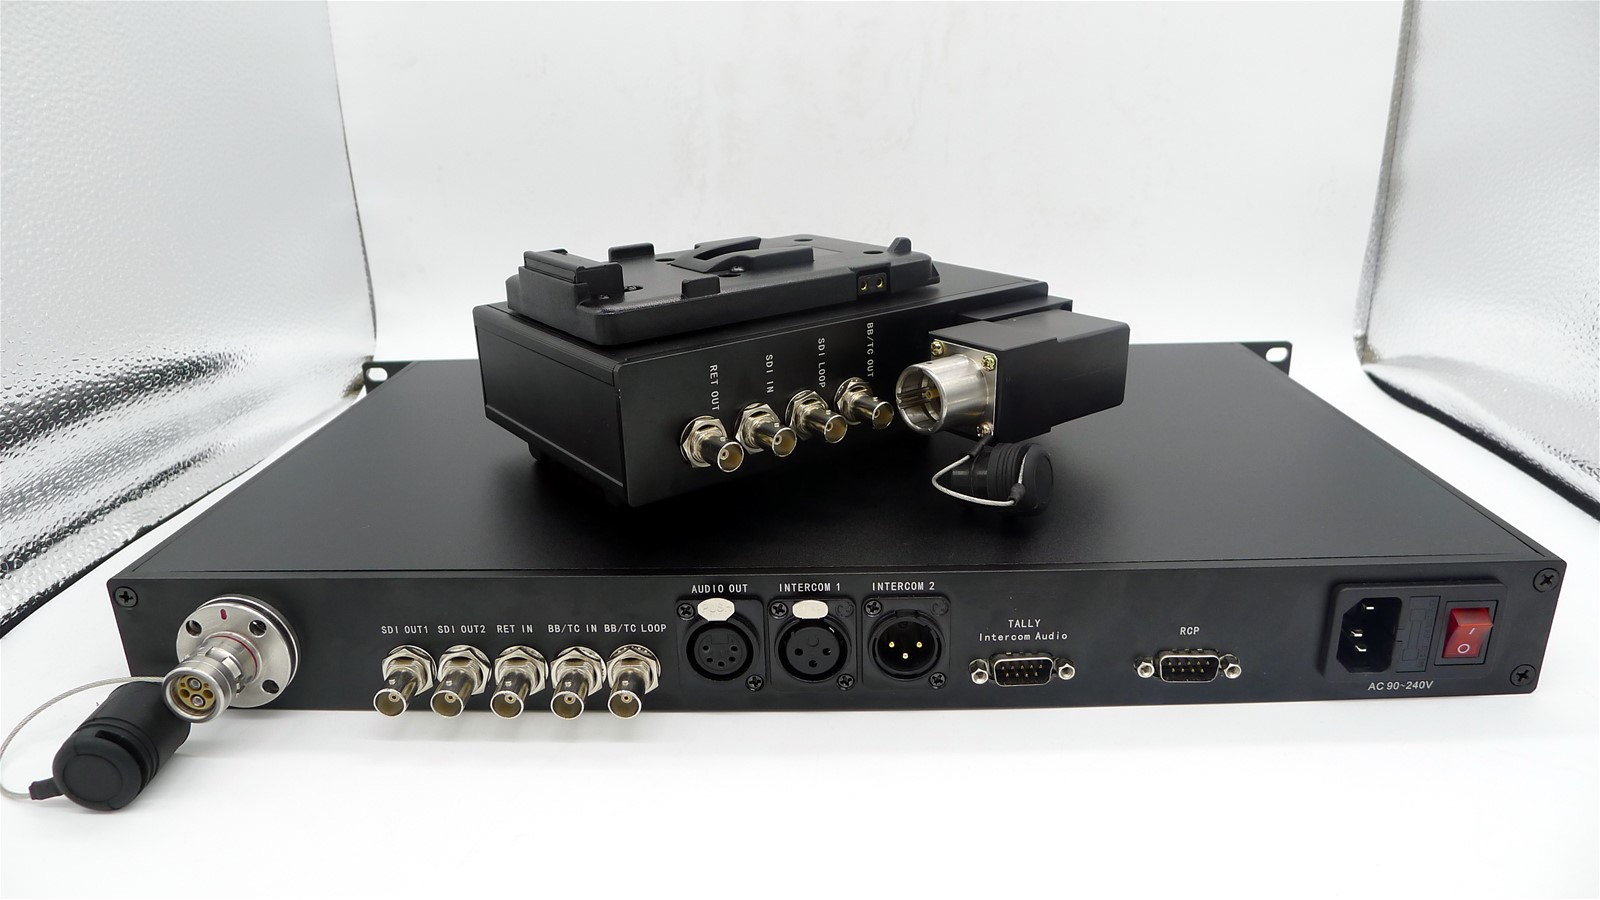 EFP to Fiber Converter(3G-Sdi+Tally+Lemo+Return Video+ Intercom+ Remote+ CCU+Ethernet +Genlock Hybrid Fiber Cable)